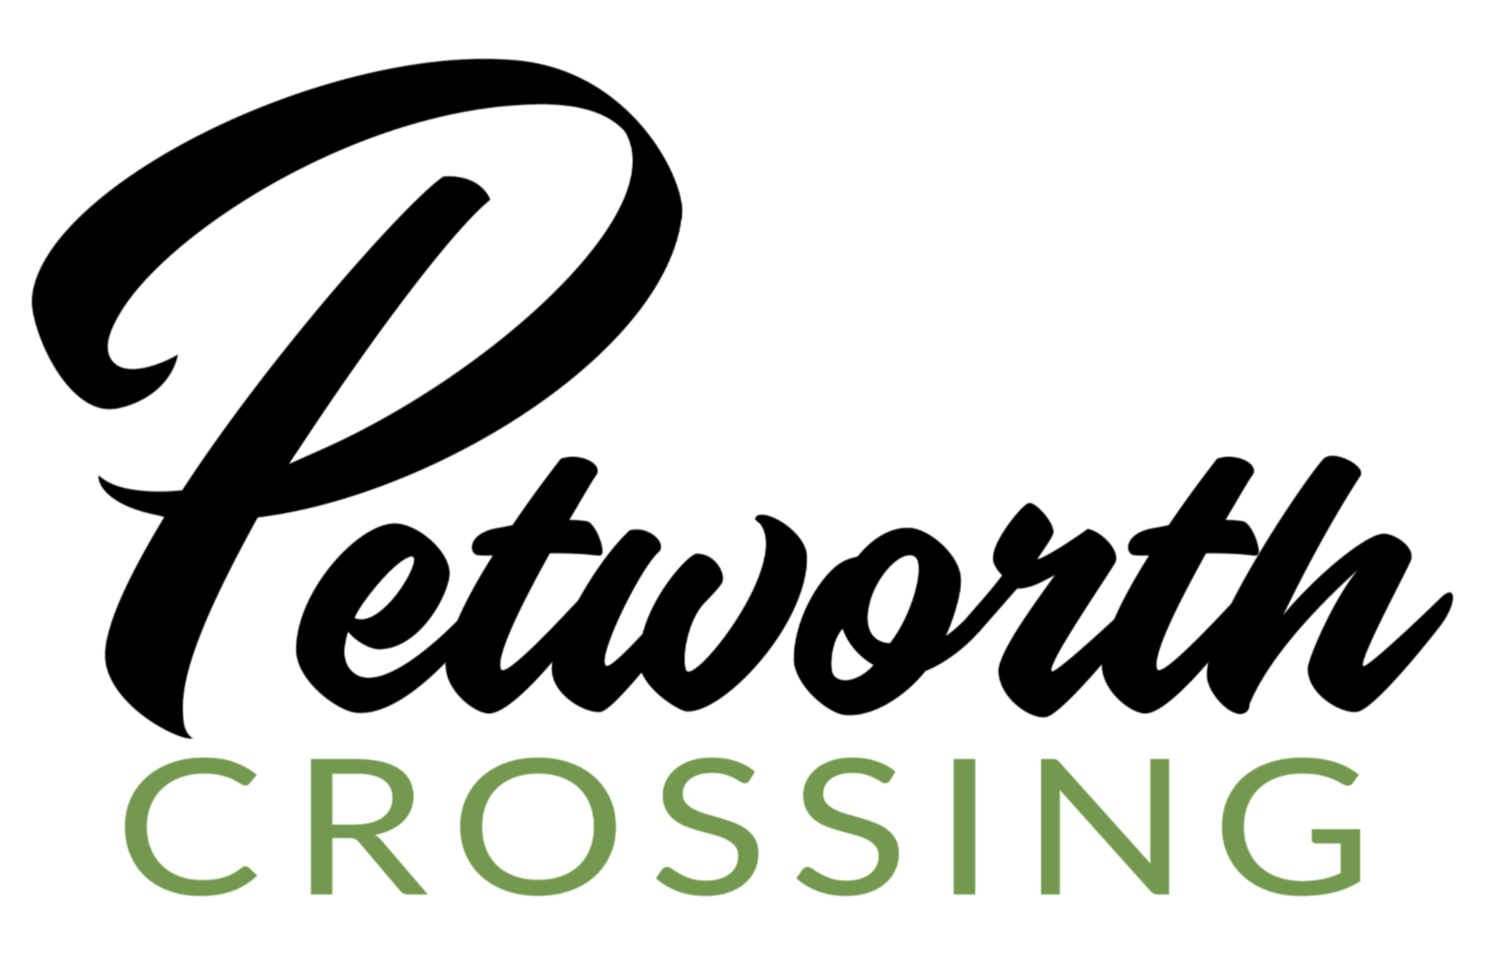 PetworthCrossing.com